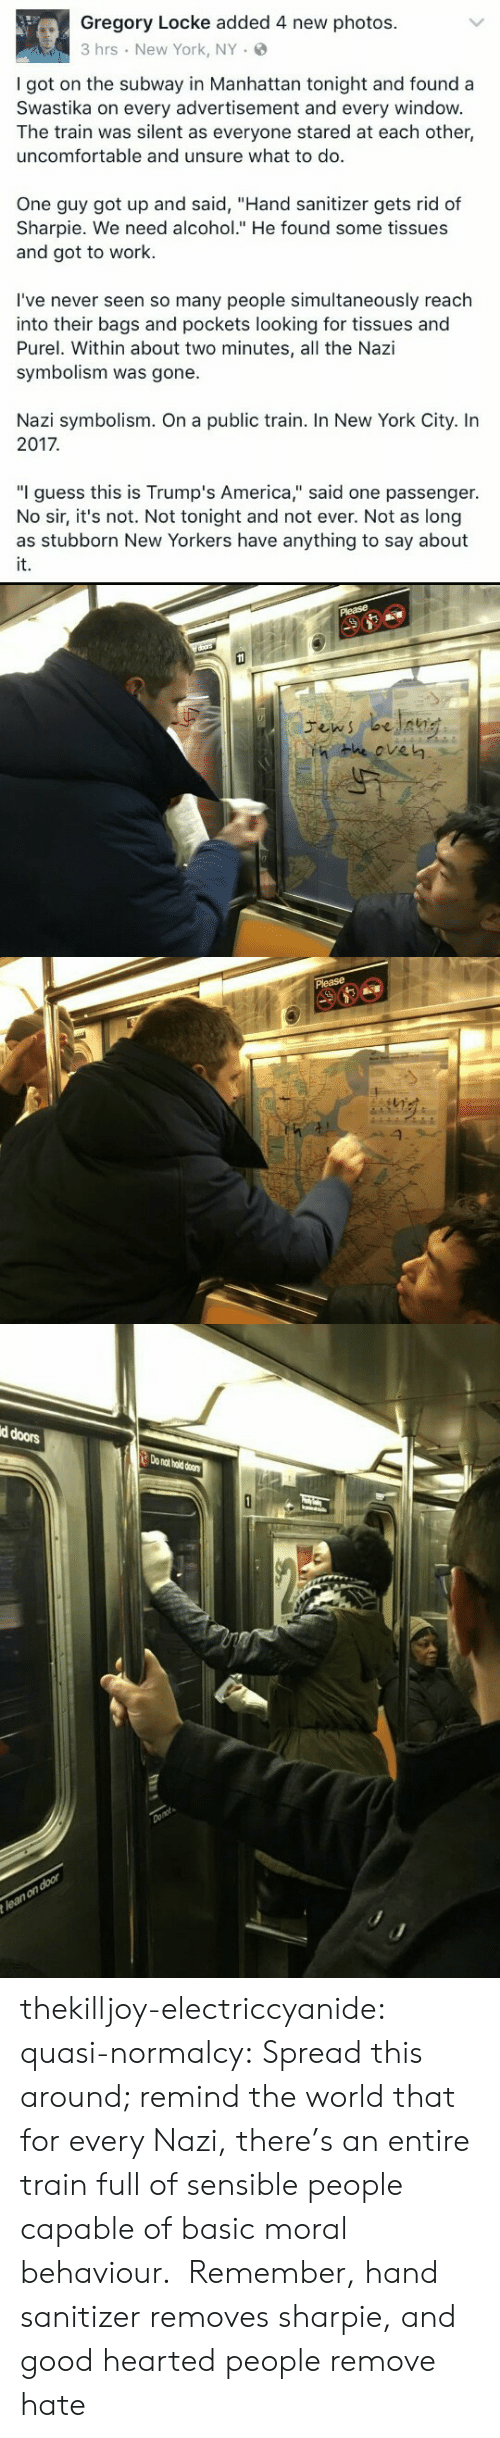 """America, New York, and Subway: Gregory Locke added 4 new photos.  3 hrs New York, NY.  I got on the subway in Manhattan tonight and found a  Swastika on every advertisement and every windovw  The train was silent as everyone stared at each other,  uncomfortable and unsure what to do.  One guy got up and said, """"Hand sanitizer gets rid of  Sharpie. We need alcohol."""" He found some tissues  and got to work.  I've never seen so many people simultaneously reach  into their bags and pockets looking for tissues and  Purel. Within about two minutes, all the Nazi  symbolism was gone.  Nazi symbolism. On a public train. In New York City. In  2017  """"I guess this is Trump's America,"""" said one passenger.  No sir, it's not. Not tonight and not ever. Not as long  it.   He eve㎏   d doors  o nat hold doors thekilljoy-electriccyanide: quasi-normalcy: Spread this around; remind the world that for every Nazi, there's an entire train full of sensible people capable of basic moral behaviour.  Remember, hand sanitizer removes sharpie, and good hearted people remove hate"""